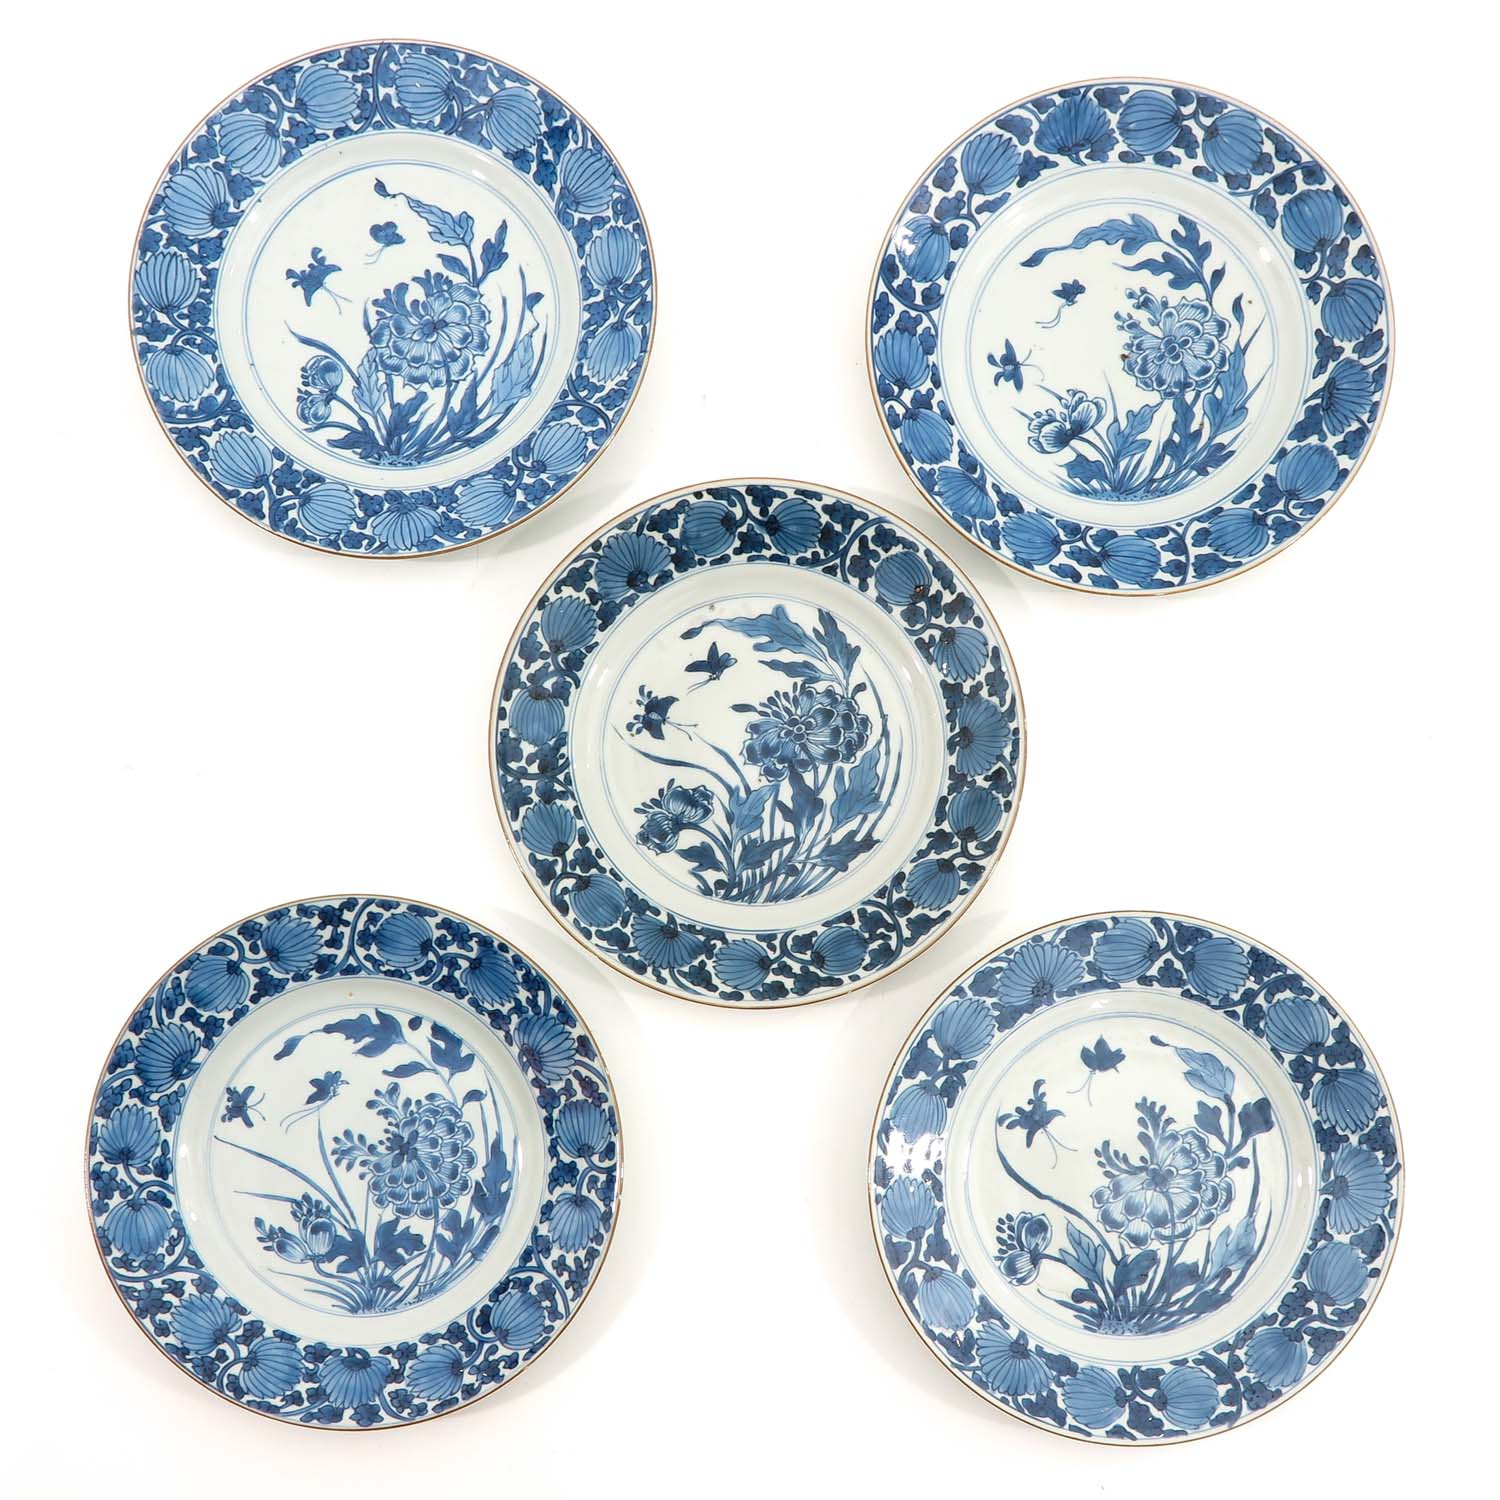 A Series of 5 Blue and White Plates